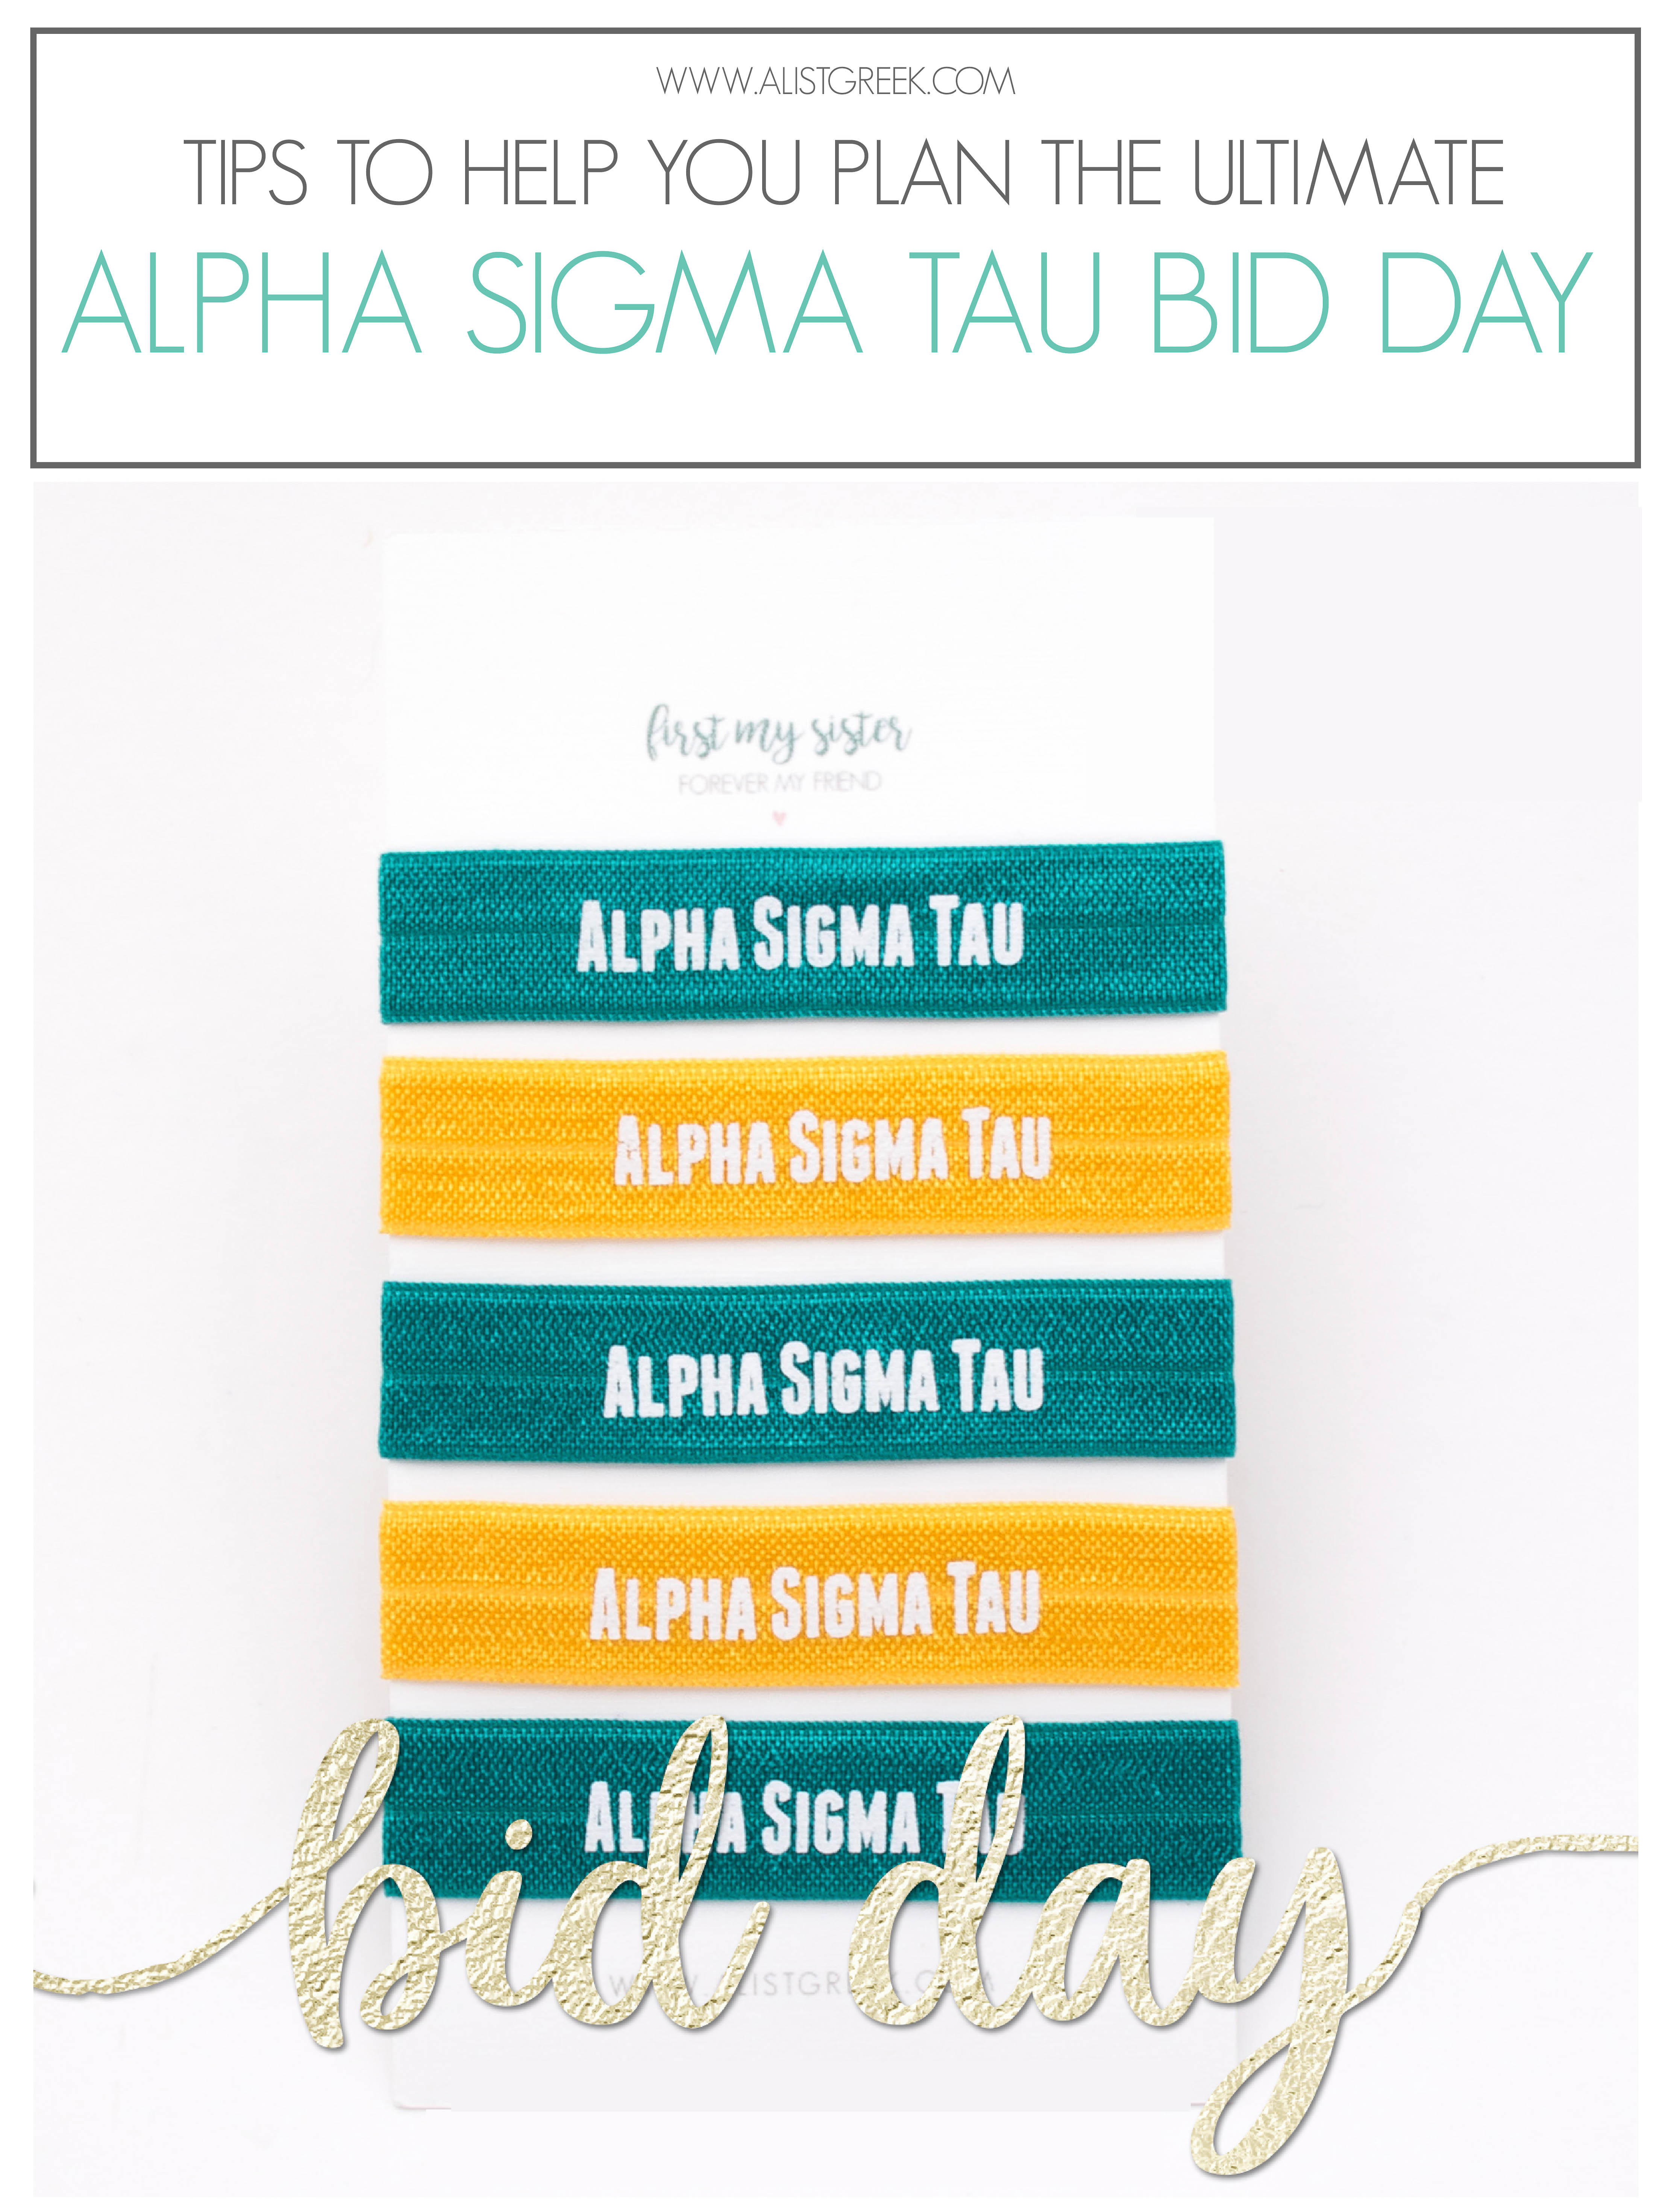 Alpha Sigma Tau Bid Day Blog Feature Image